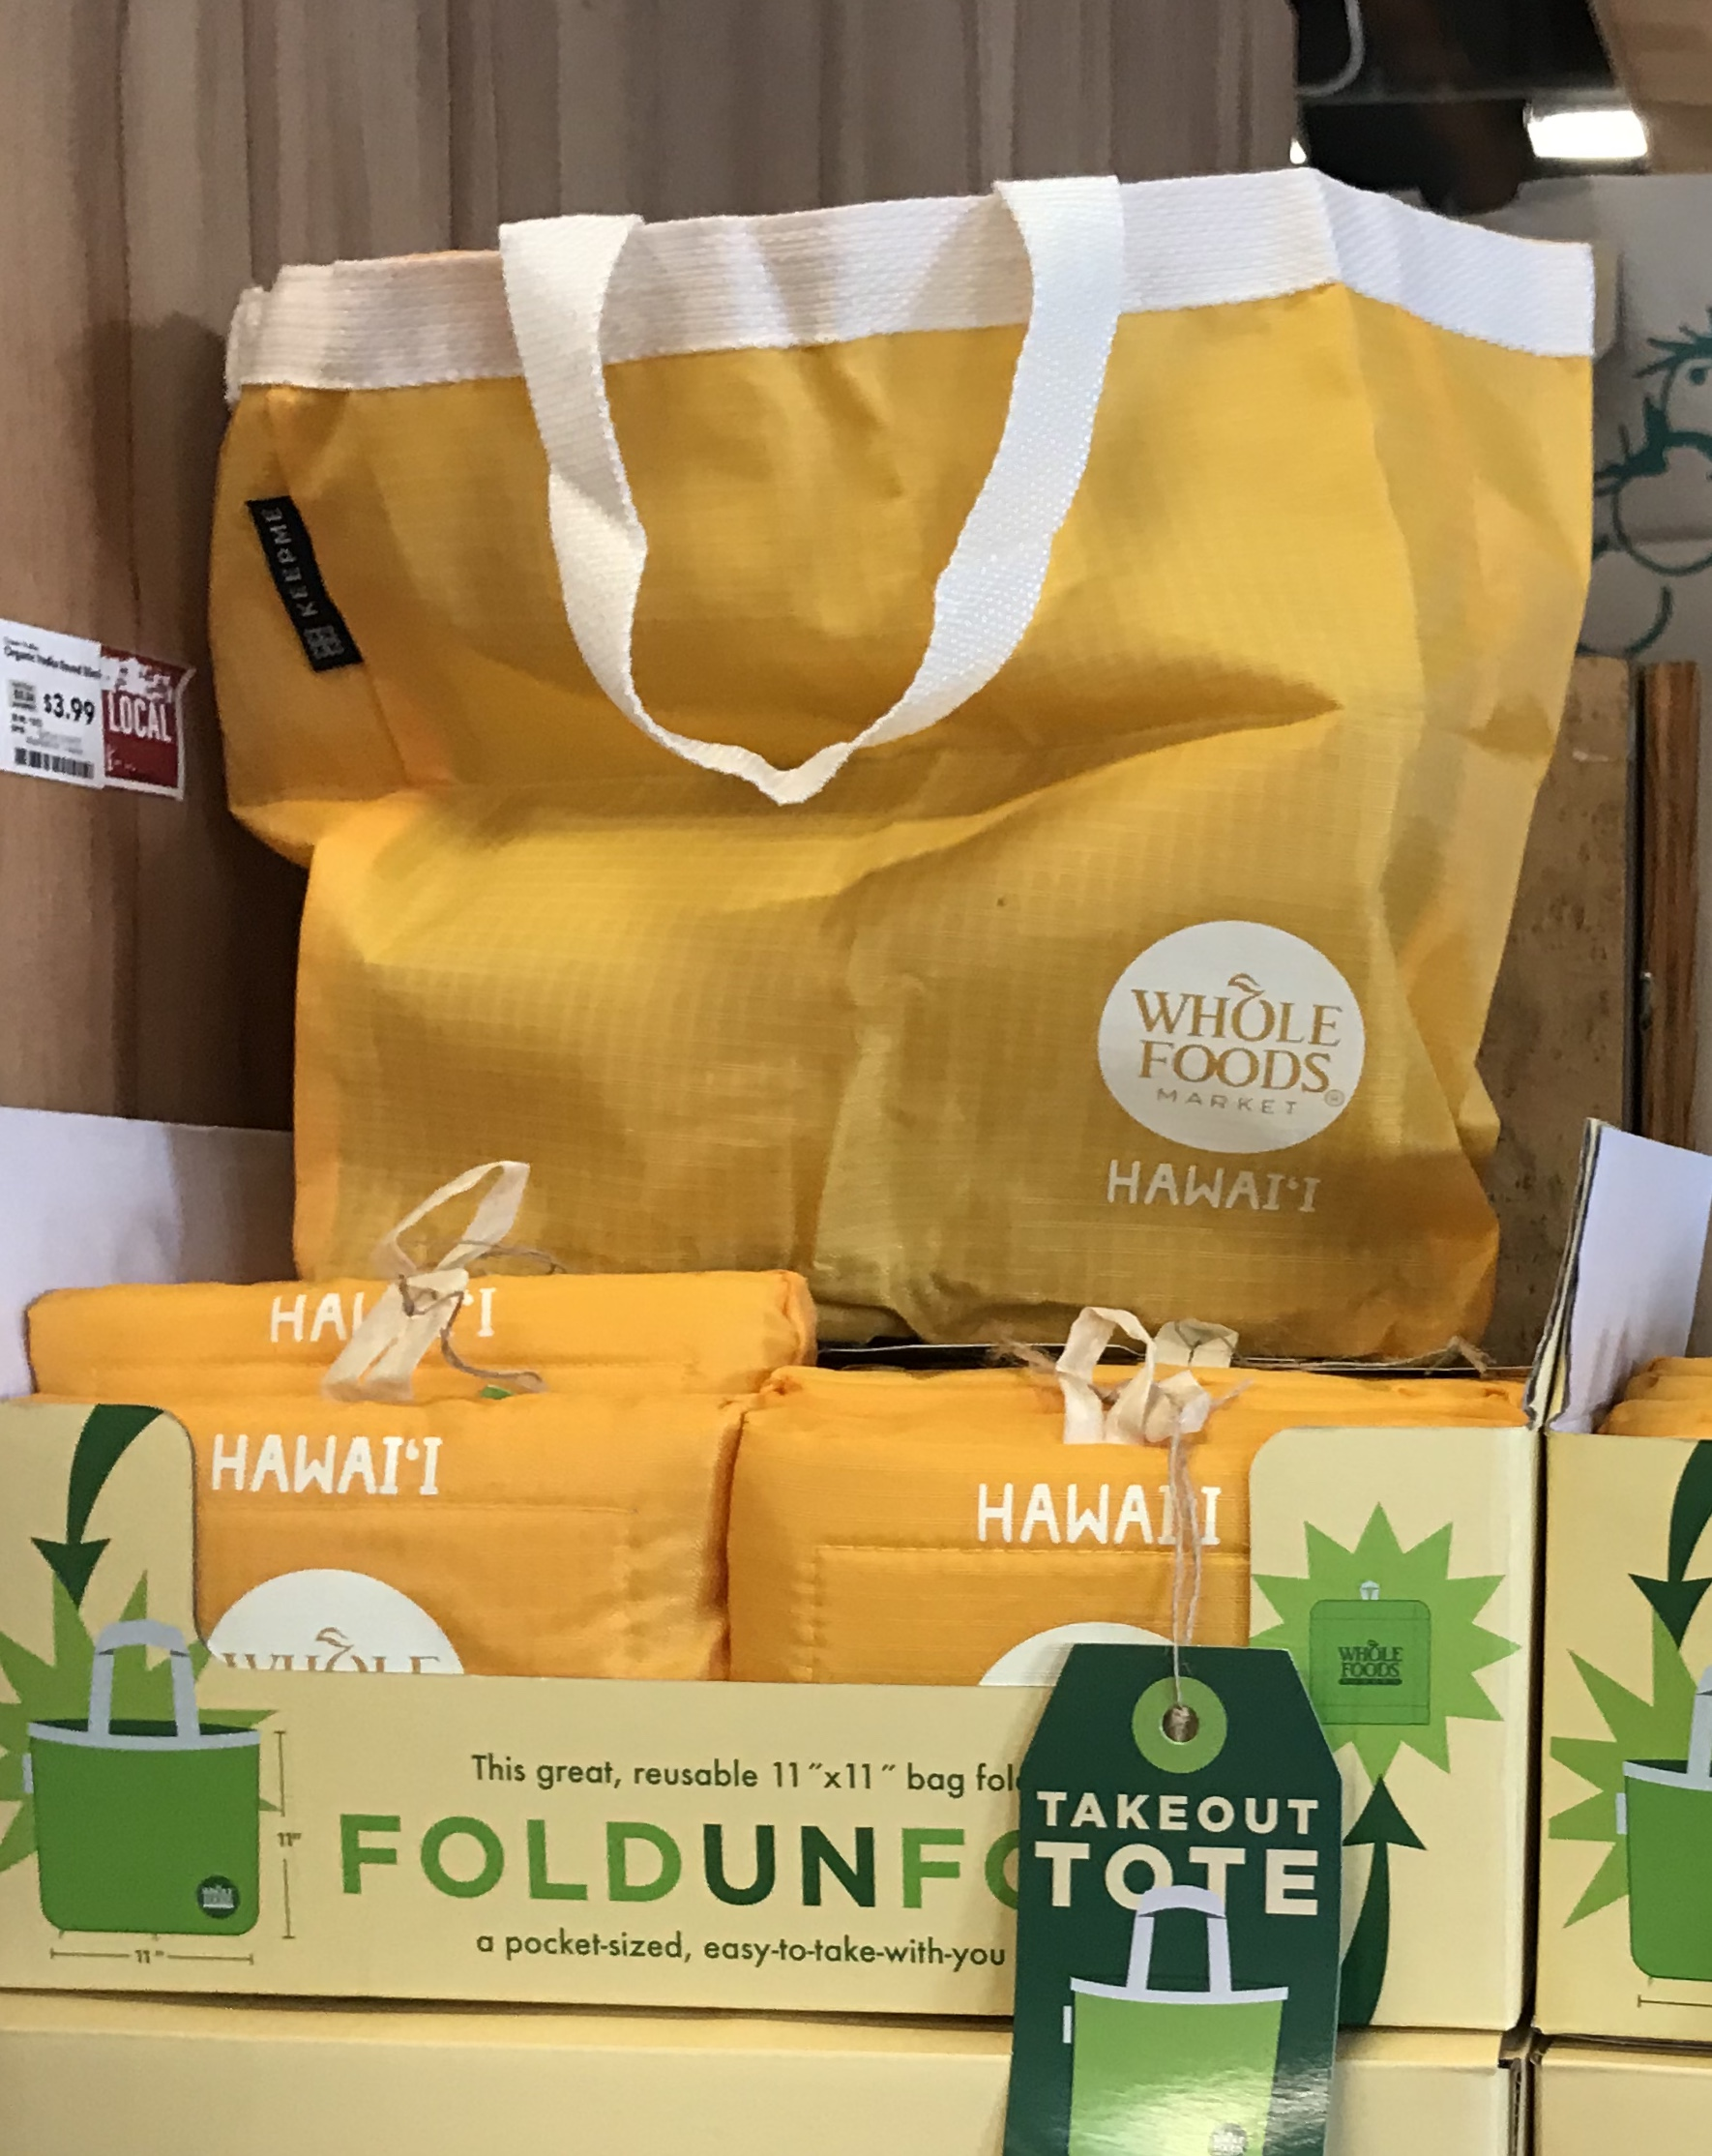 HAWAII WHOLE FOODS MARKET 限定エコ・トートバッグ